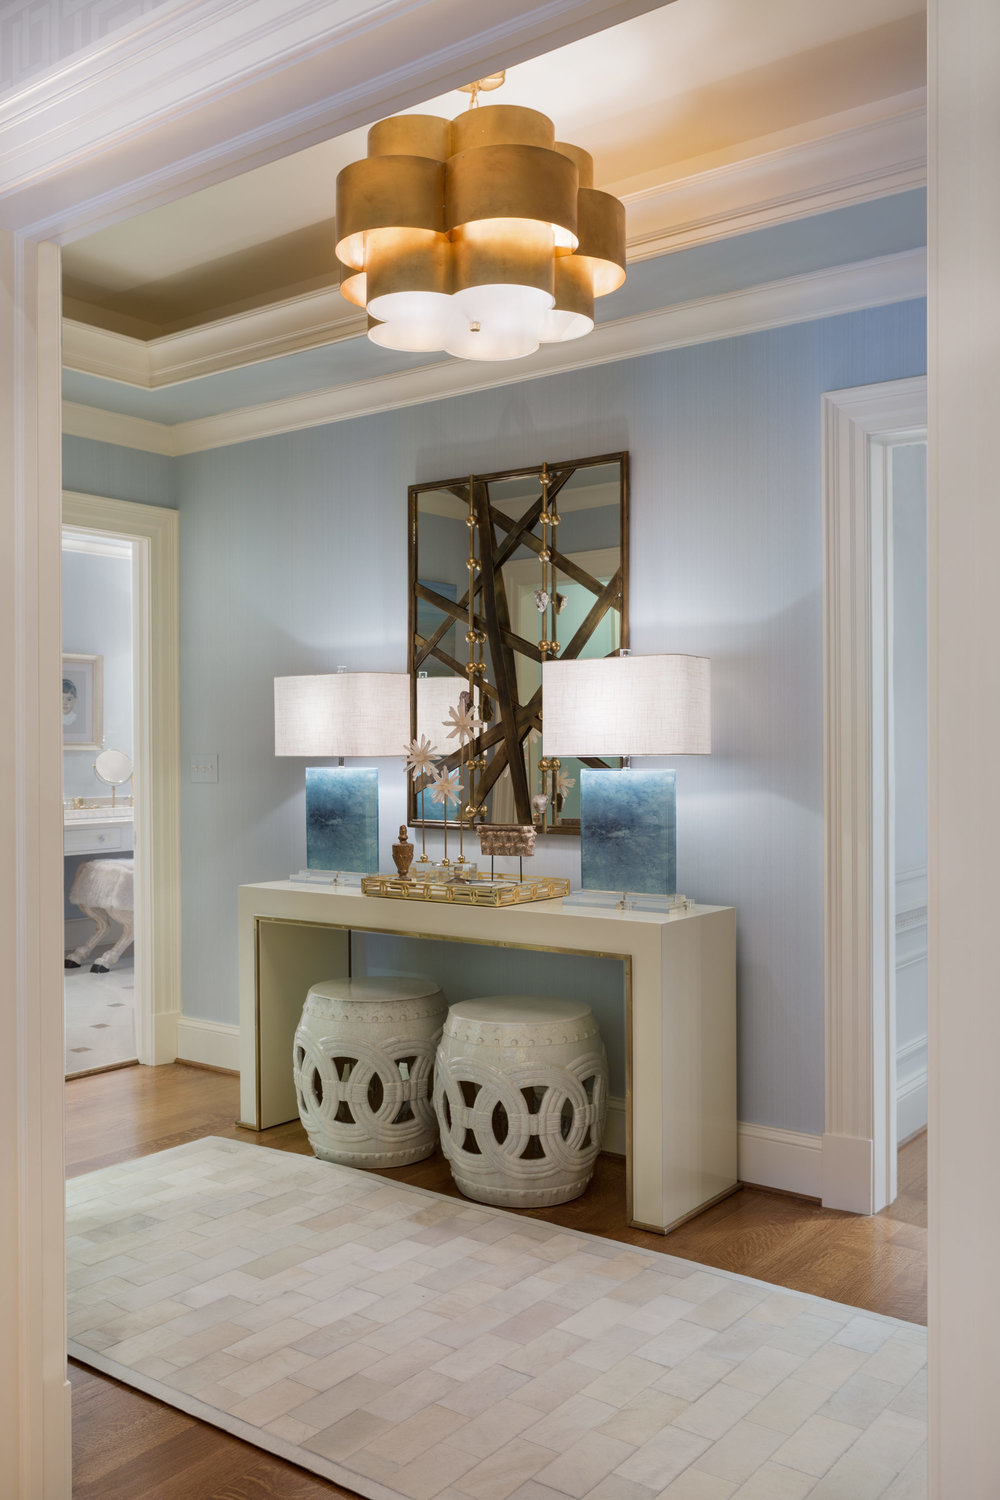 Victoria-Sanchez-Showhouse-Santa-Fe-luxury-master-suite-design.jpg